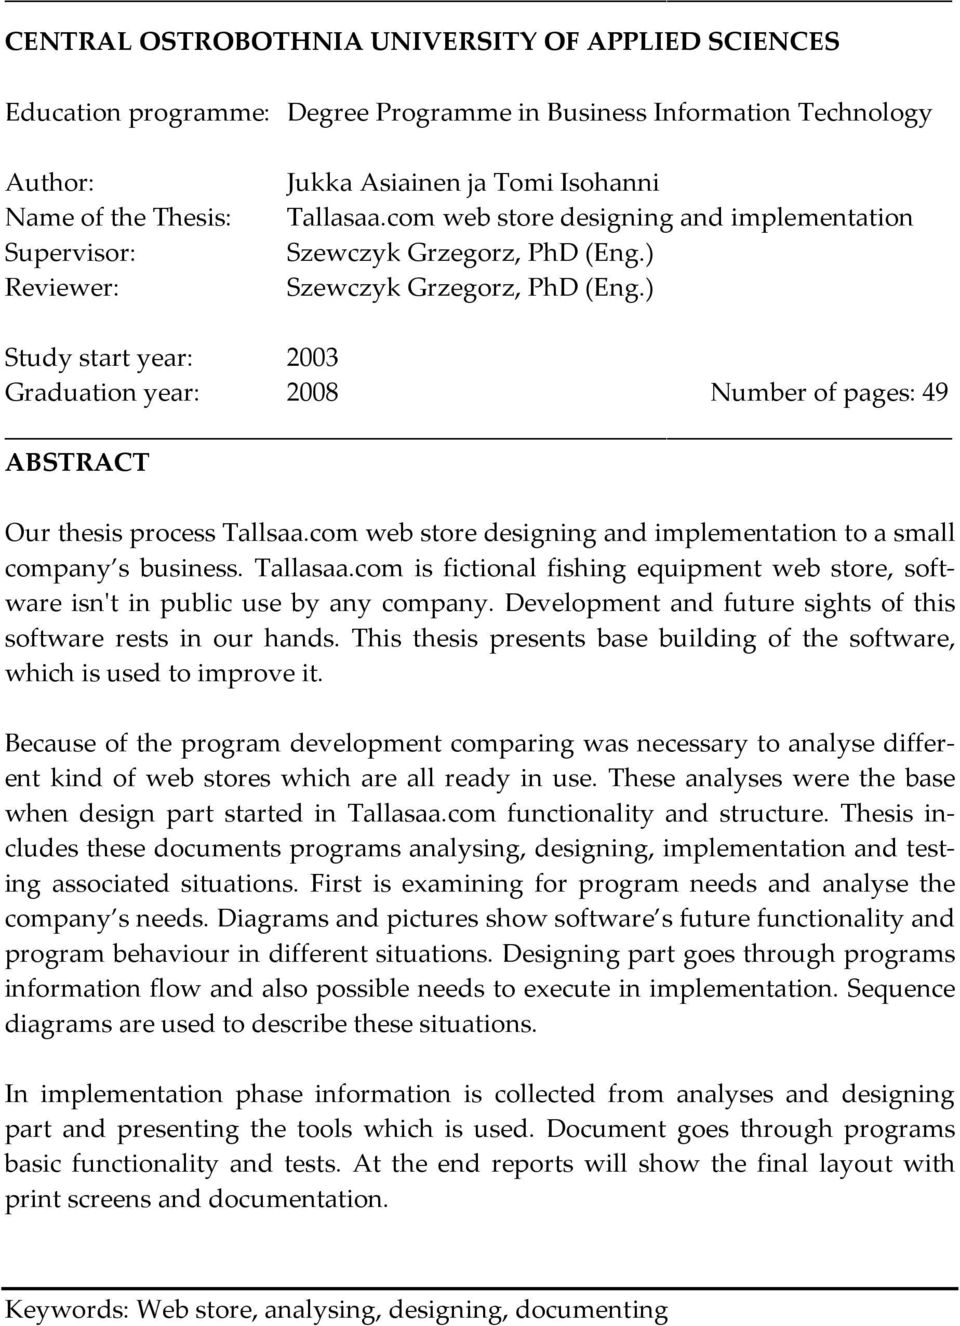 ) Study start year: 2003 Graduation year: 2008 Number of pages: 49 ABSTRACT Our thesis process Tallsaa.com web store designing and implementation to a small company s business. Tallasaa.